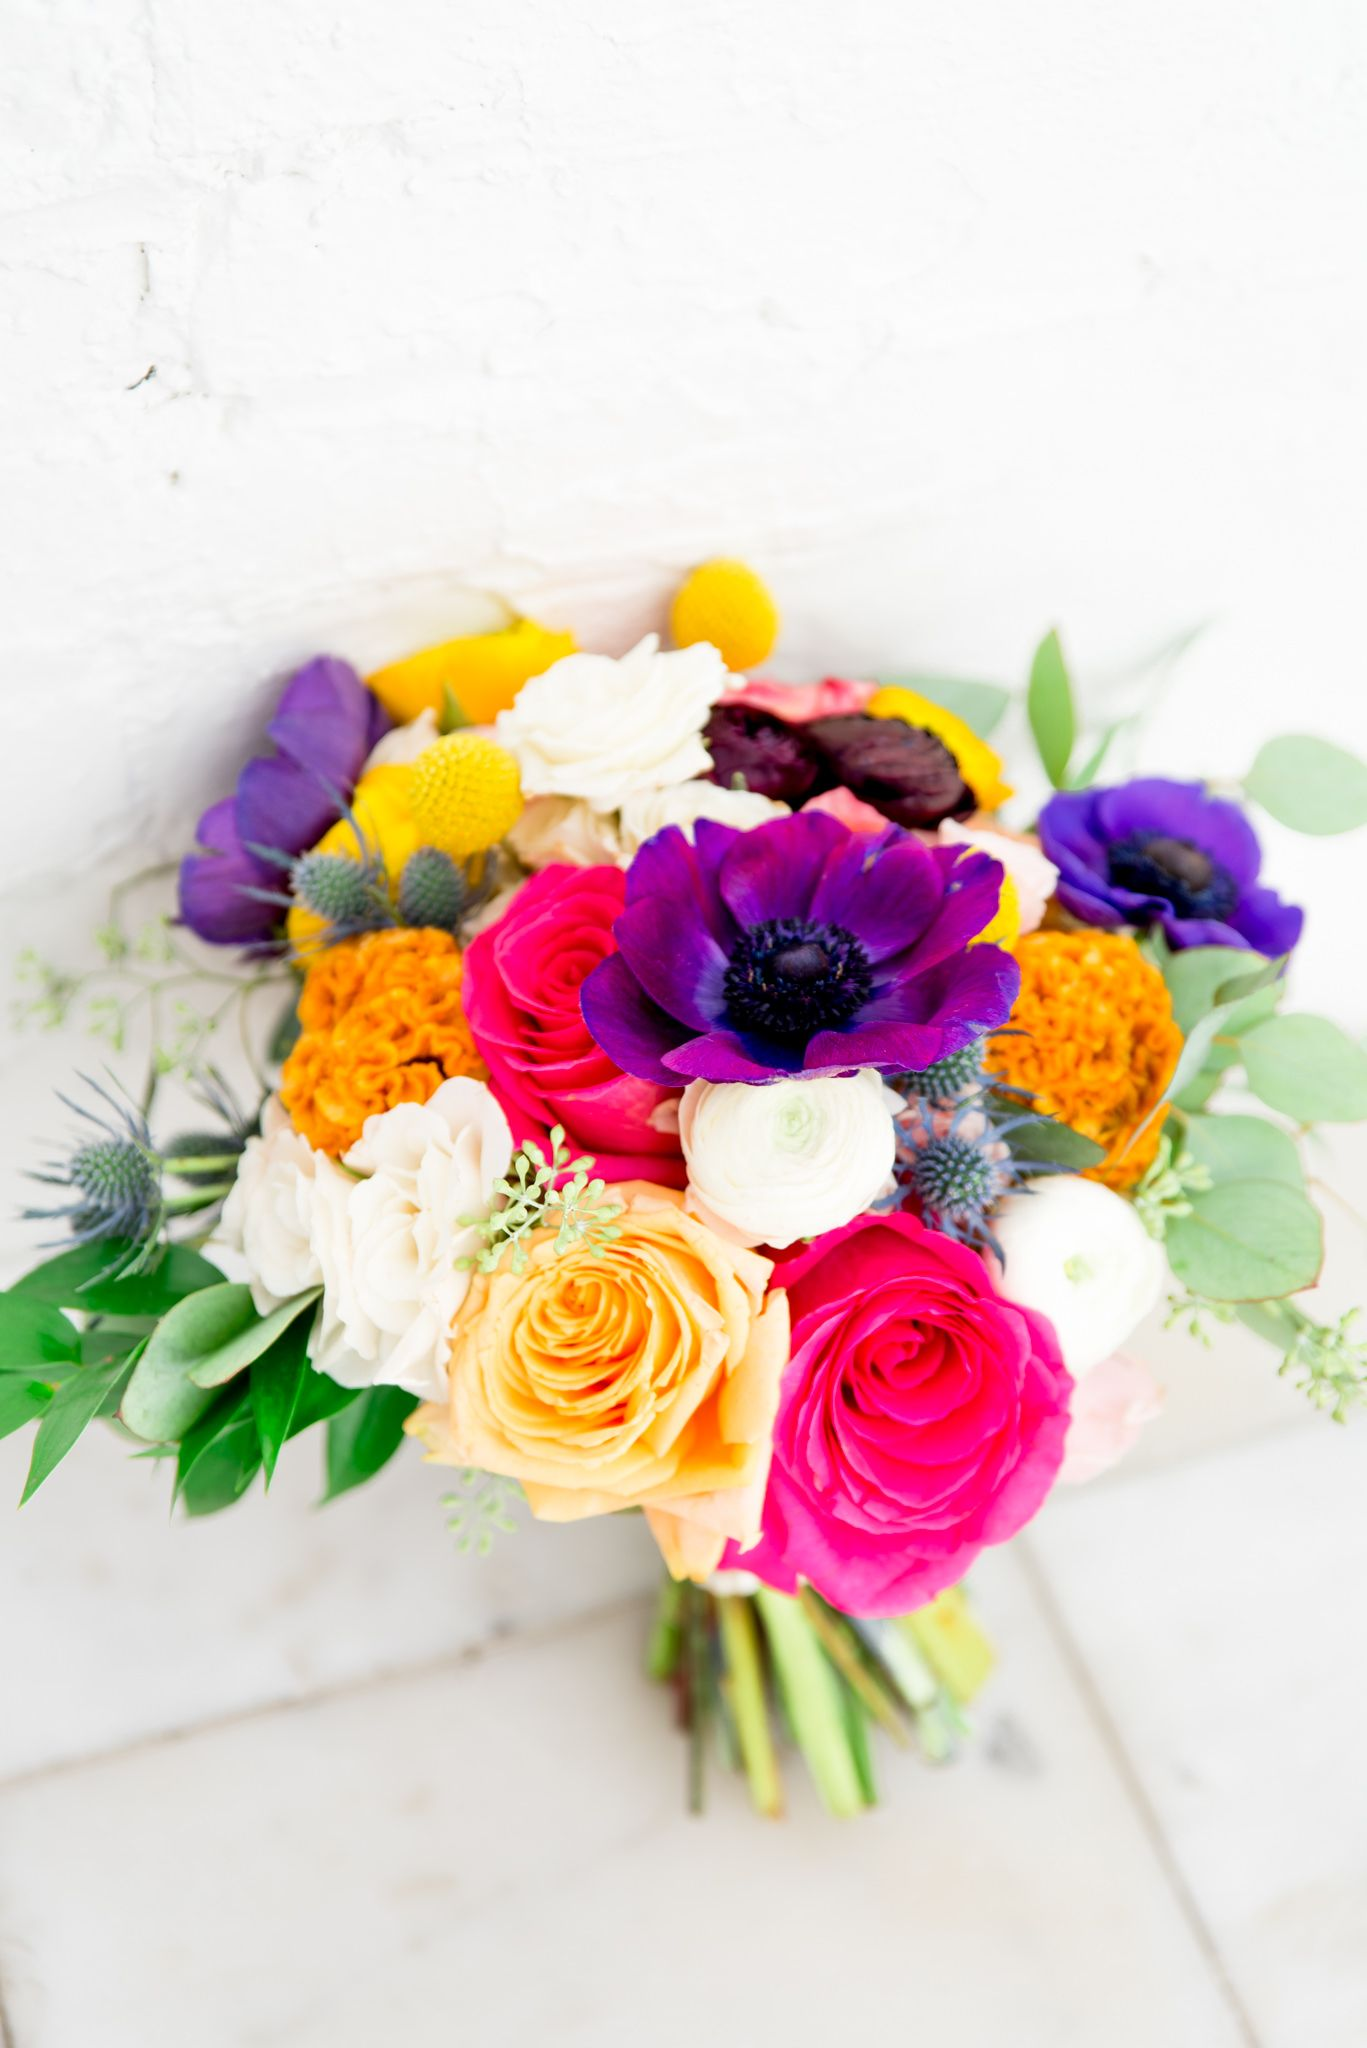 colorful wedding bouquet with purple anemone, pink roses, blue thistles, eucalyptus, and marigolds for a Chicago wedding